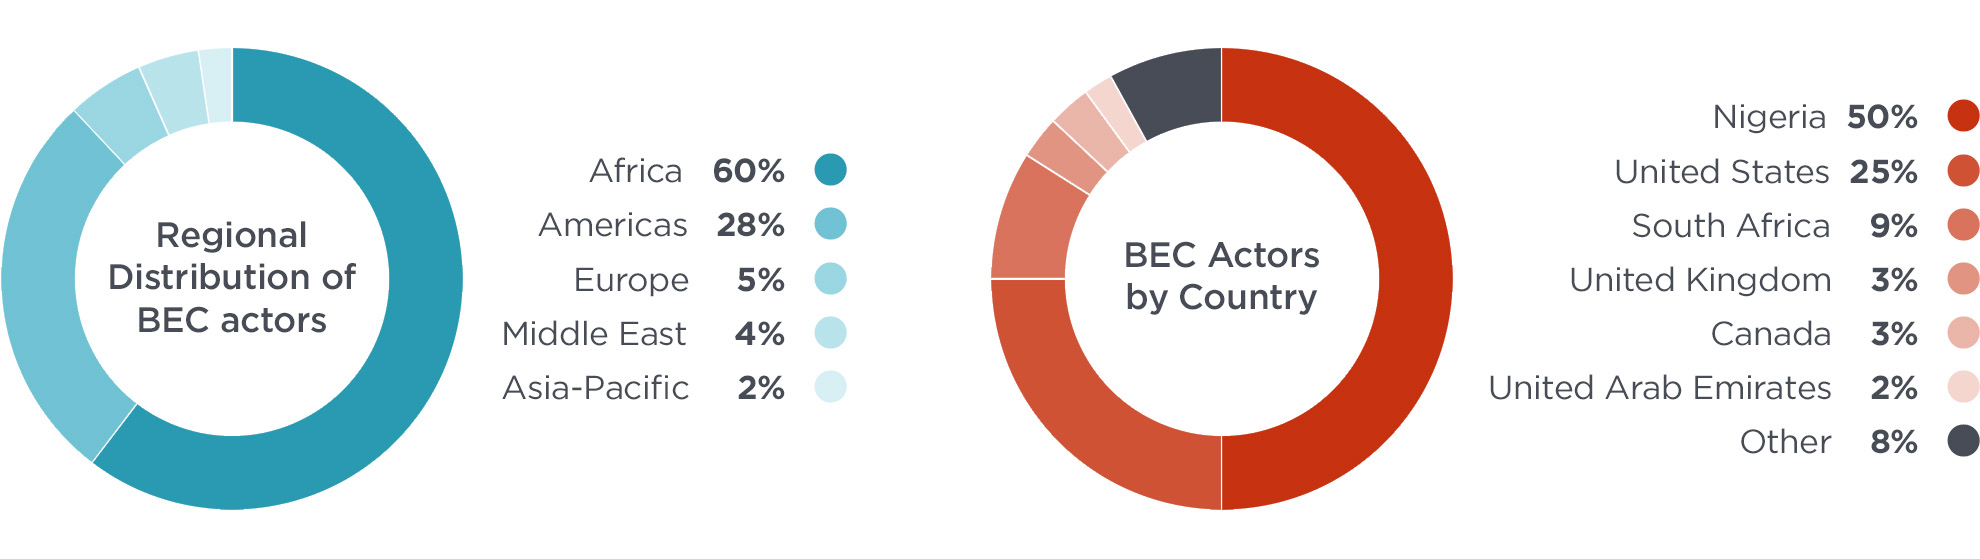 Graphic depicting BEC actors by region and country